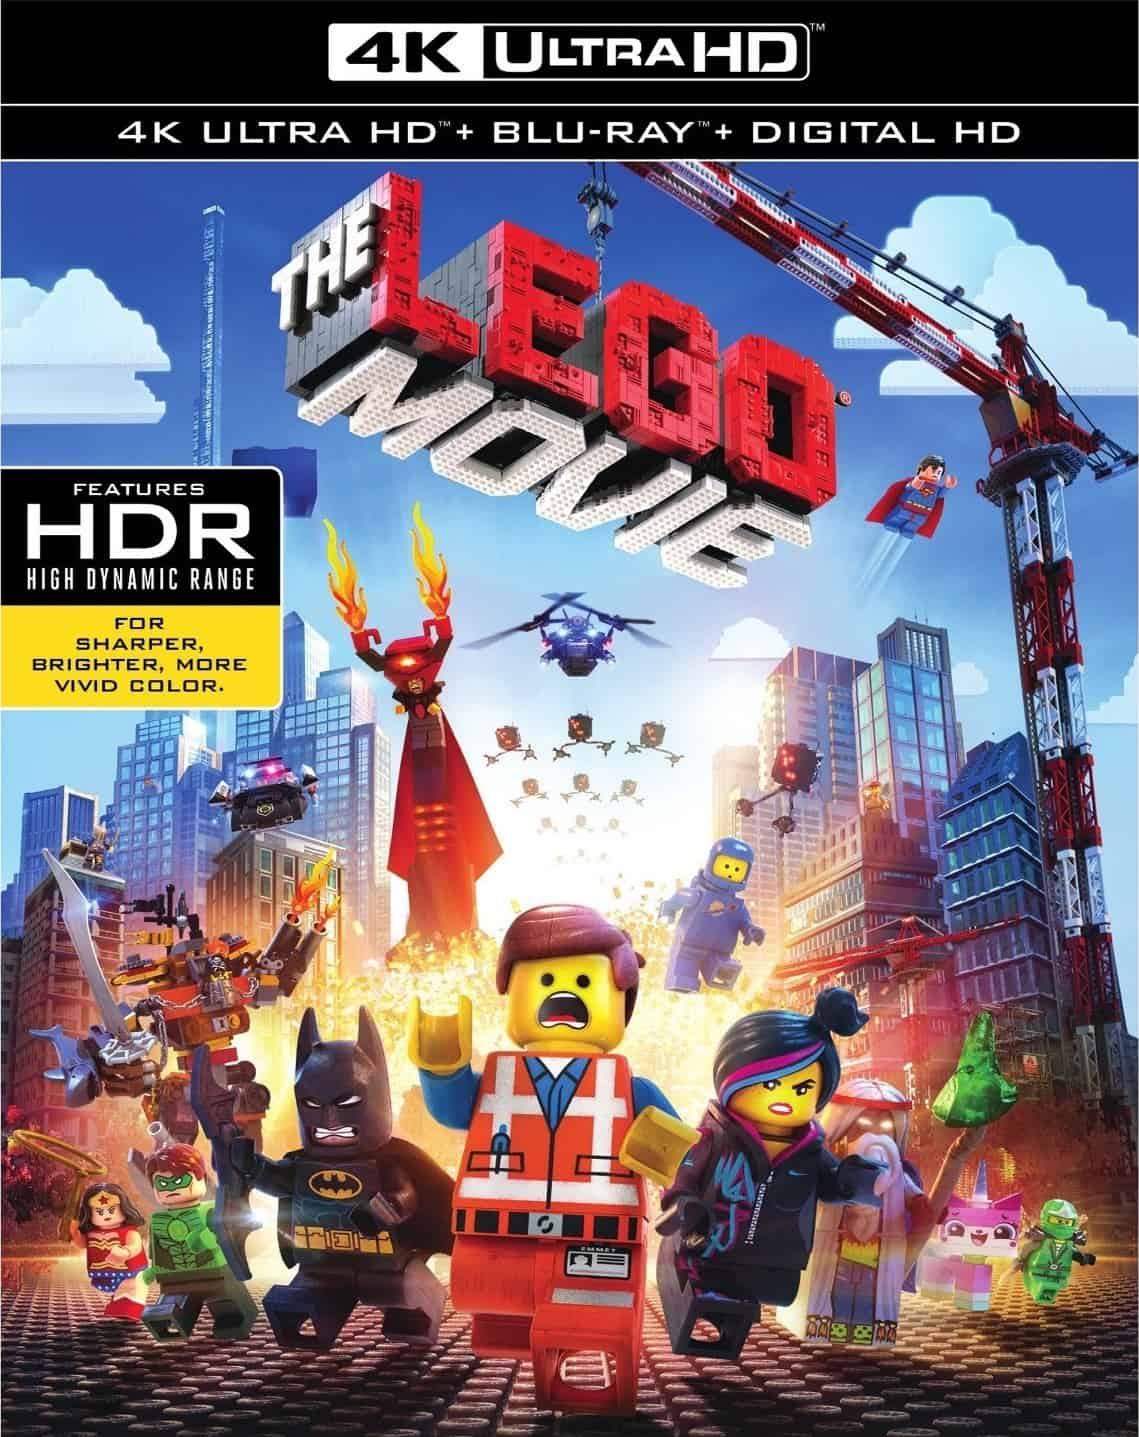 The LEGO Movie 2014 rip 4K Ultra HD 2160p